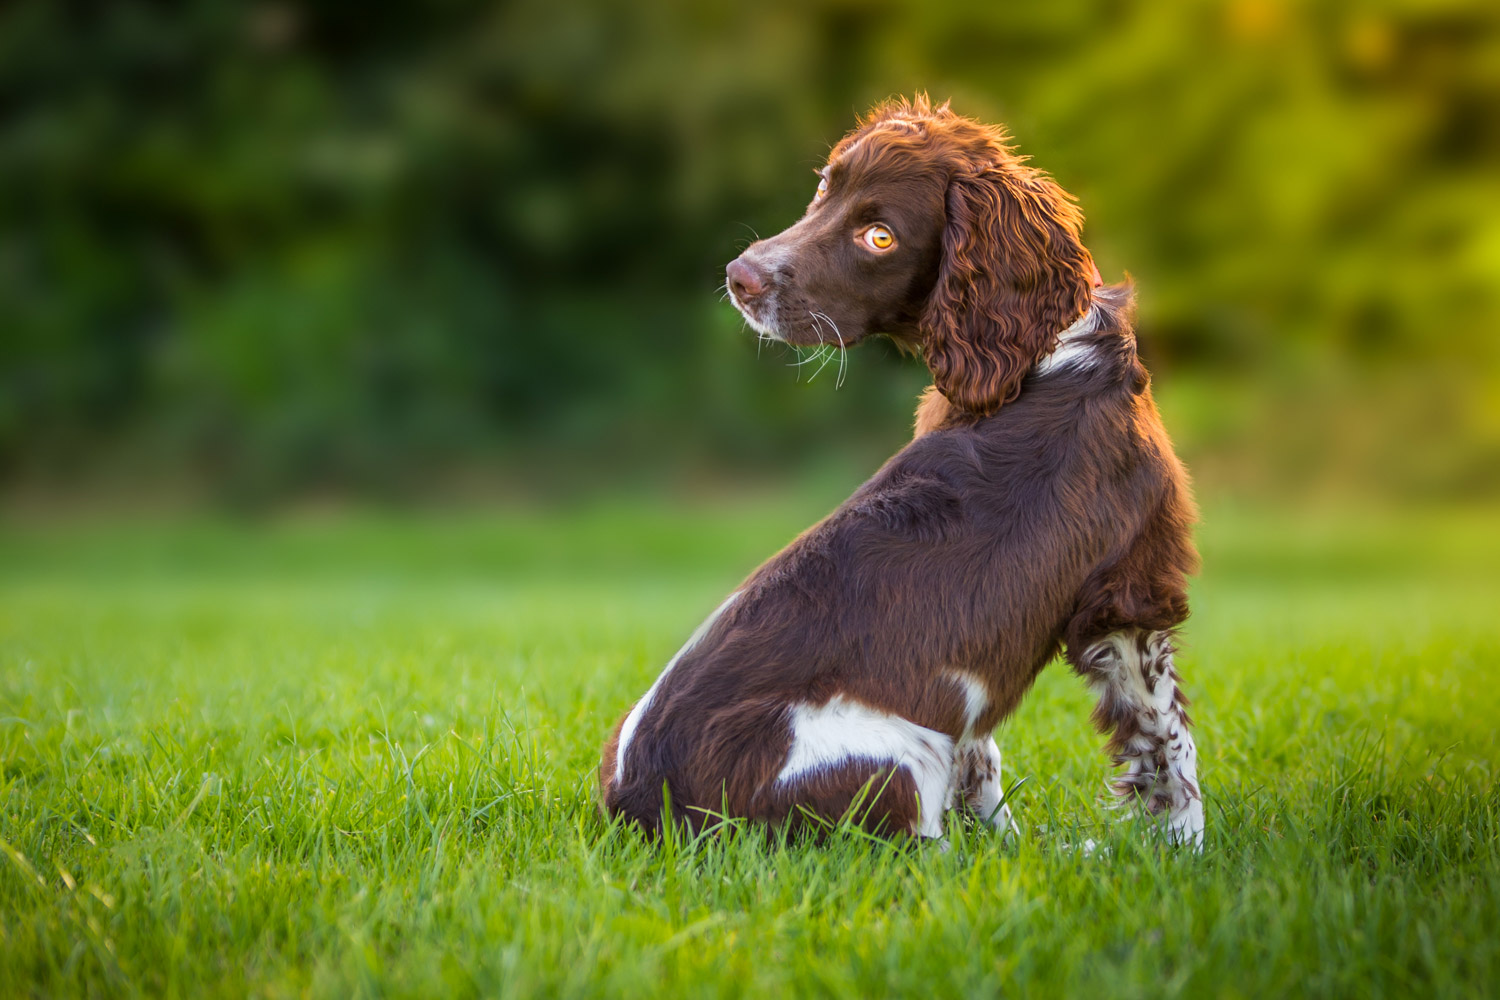 https://i1.wp.com/digital-photography-school.com/wp-content/uploads/2018/11/dog-photography-by-andrew-sproule-springer-spaniel-sussex.jpg?resize=1500%2C1000&ssl=1